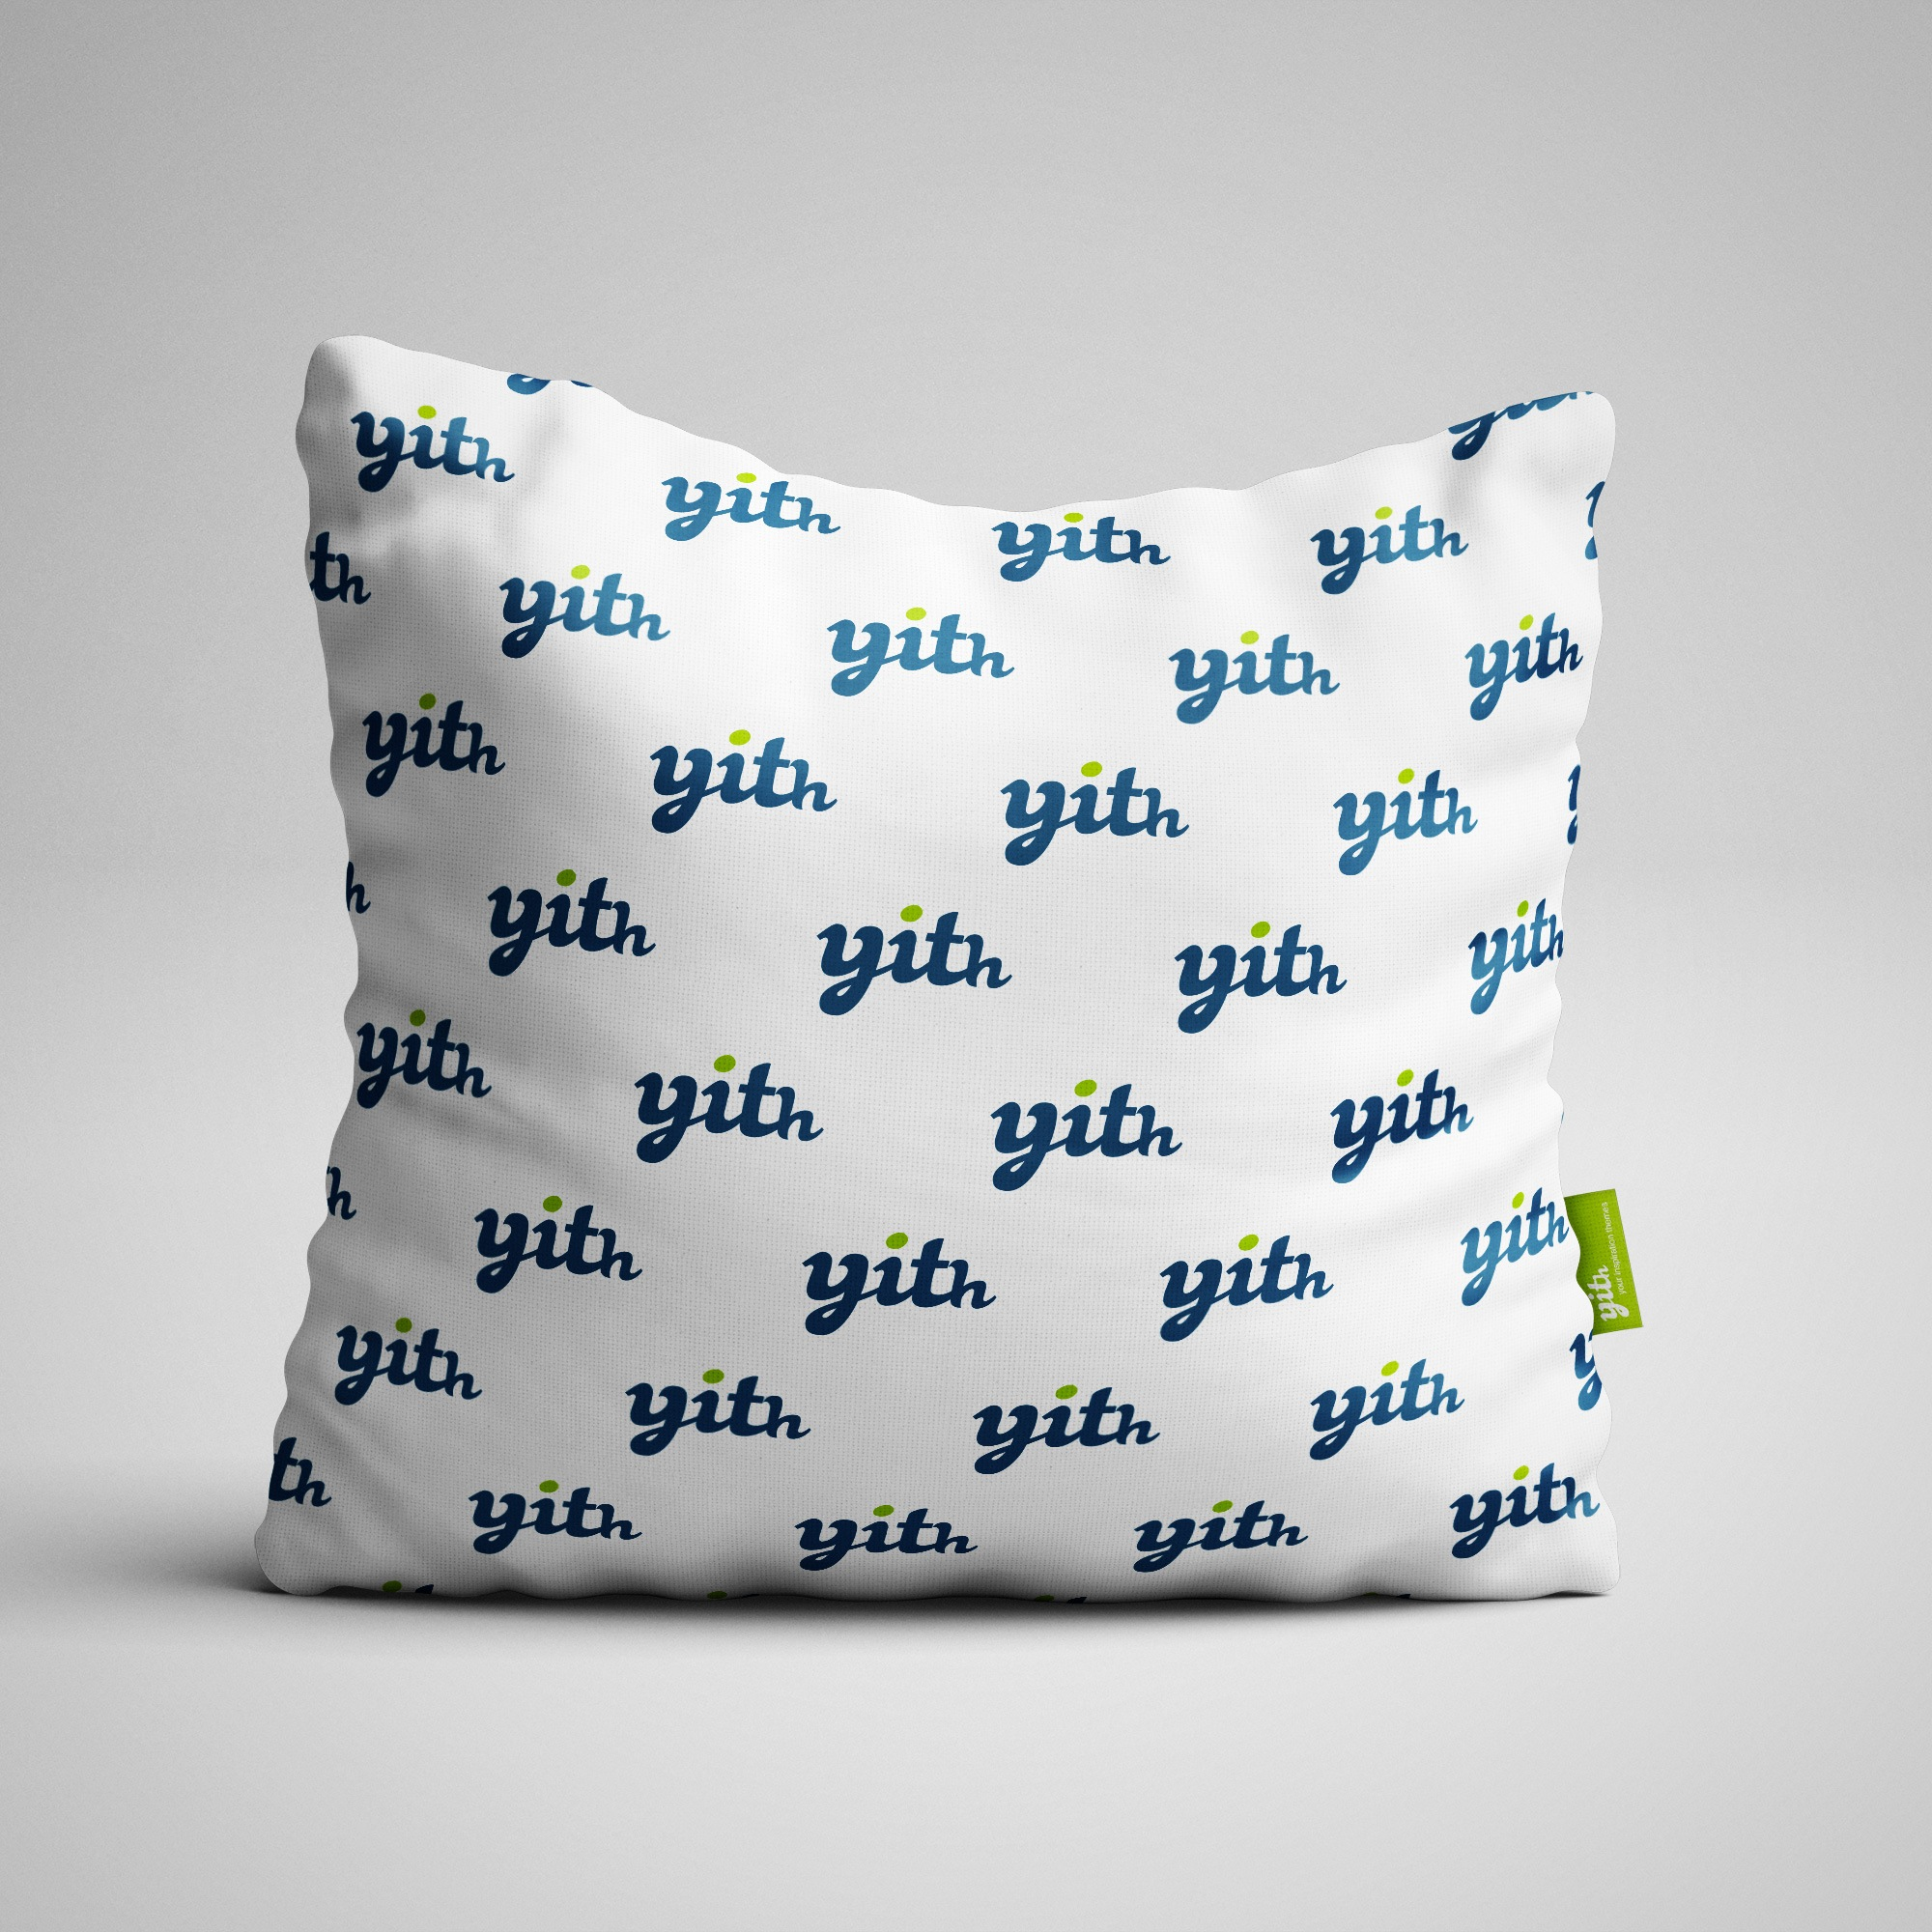 YITH Cushion - White